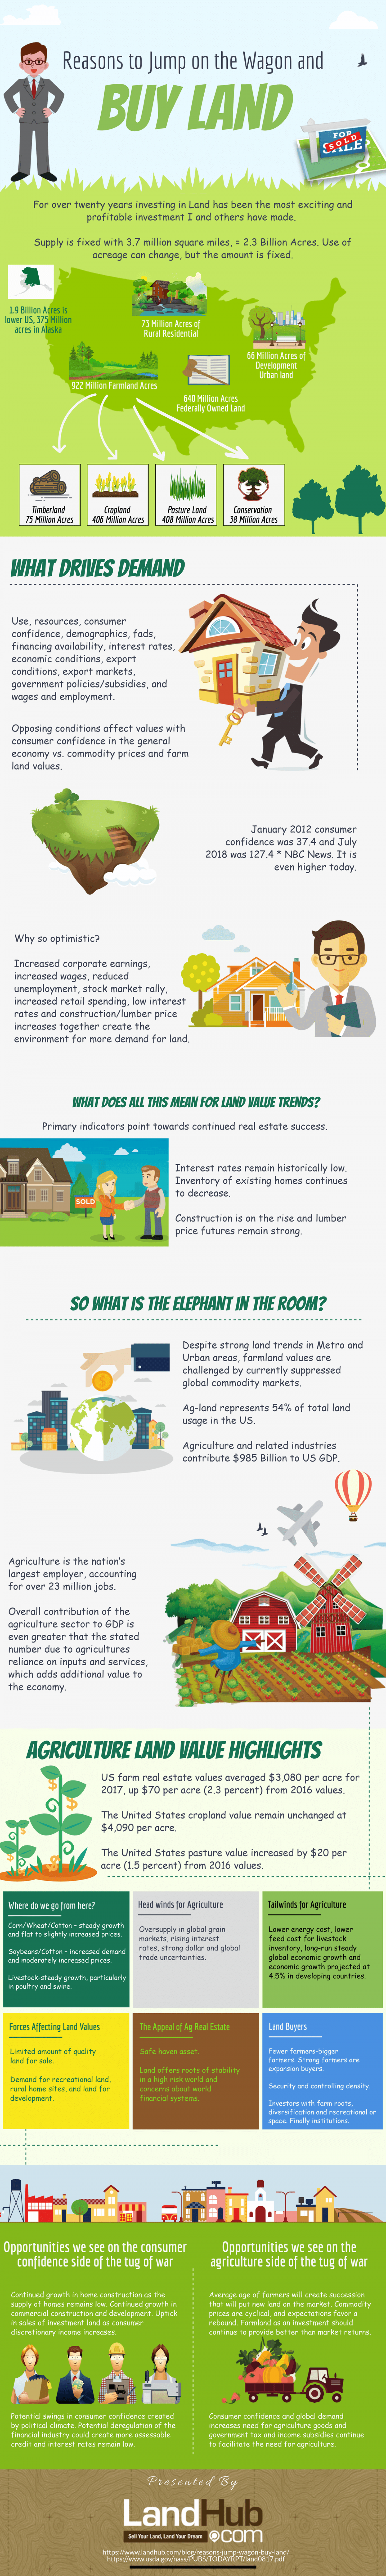 Why (and How) to Invest in the U.S. Land Market Infographic